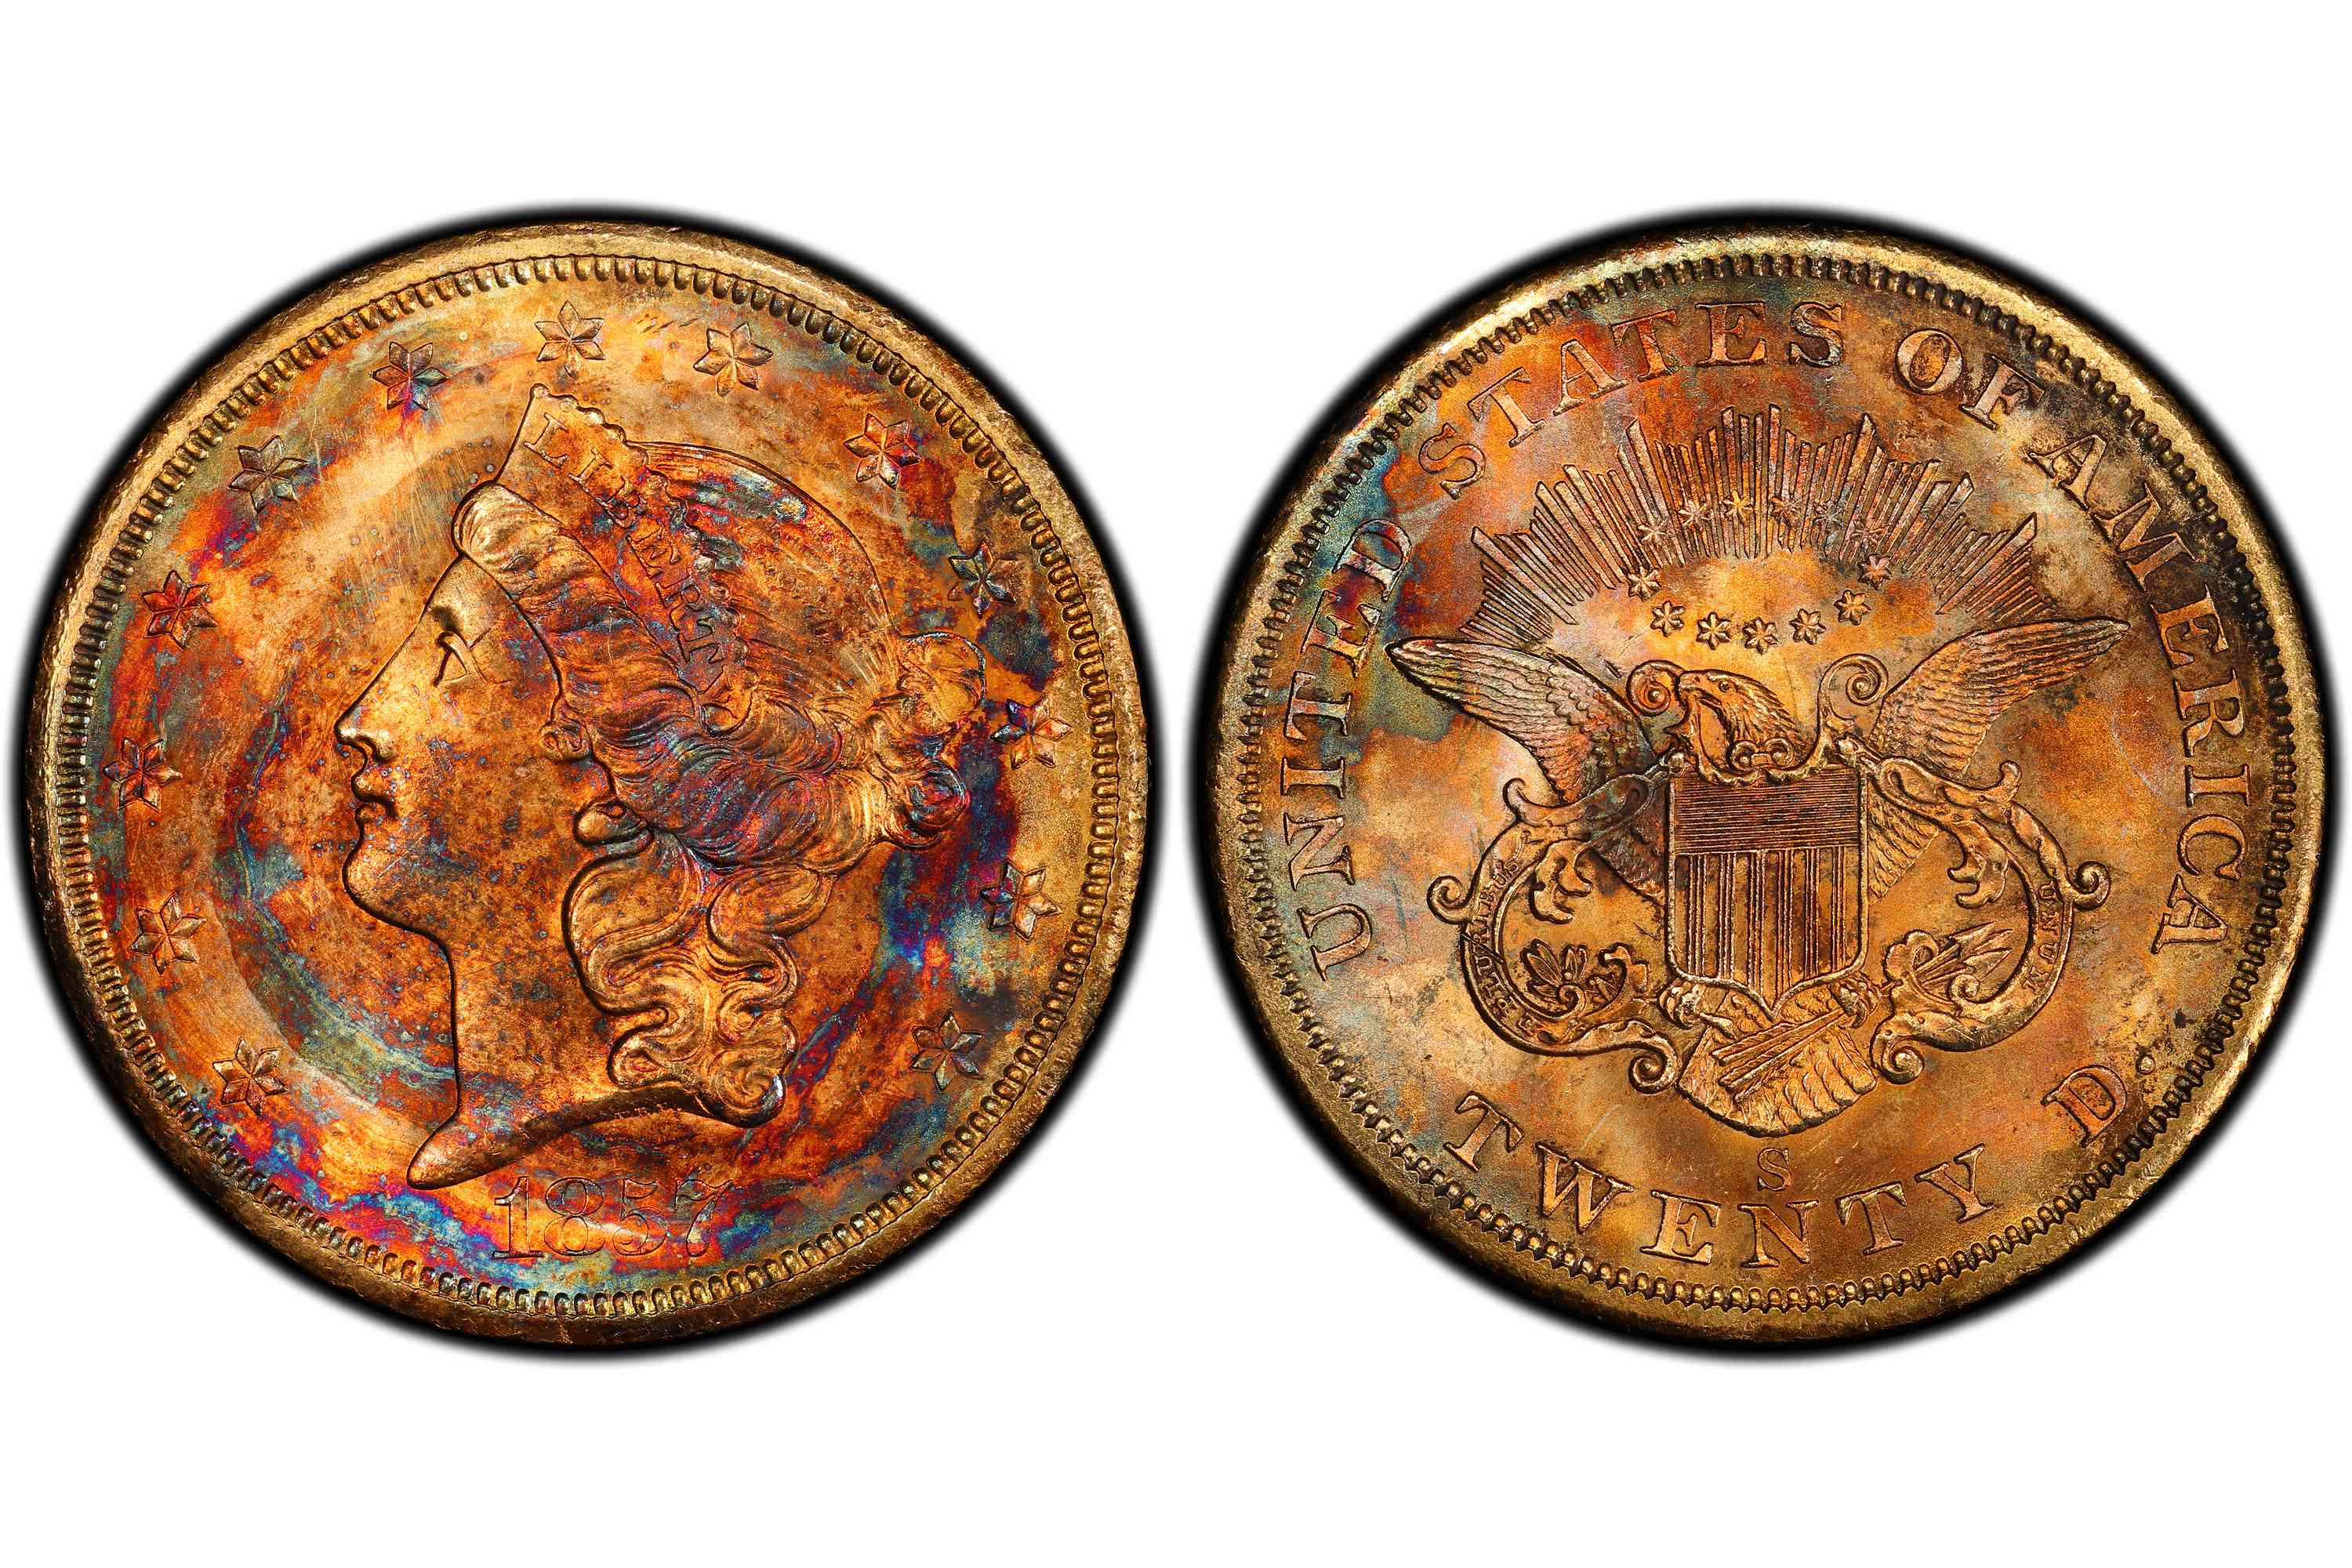 1857-S twenty dollar gold piece with brilliant colorful toning.